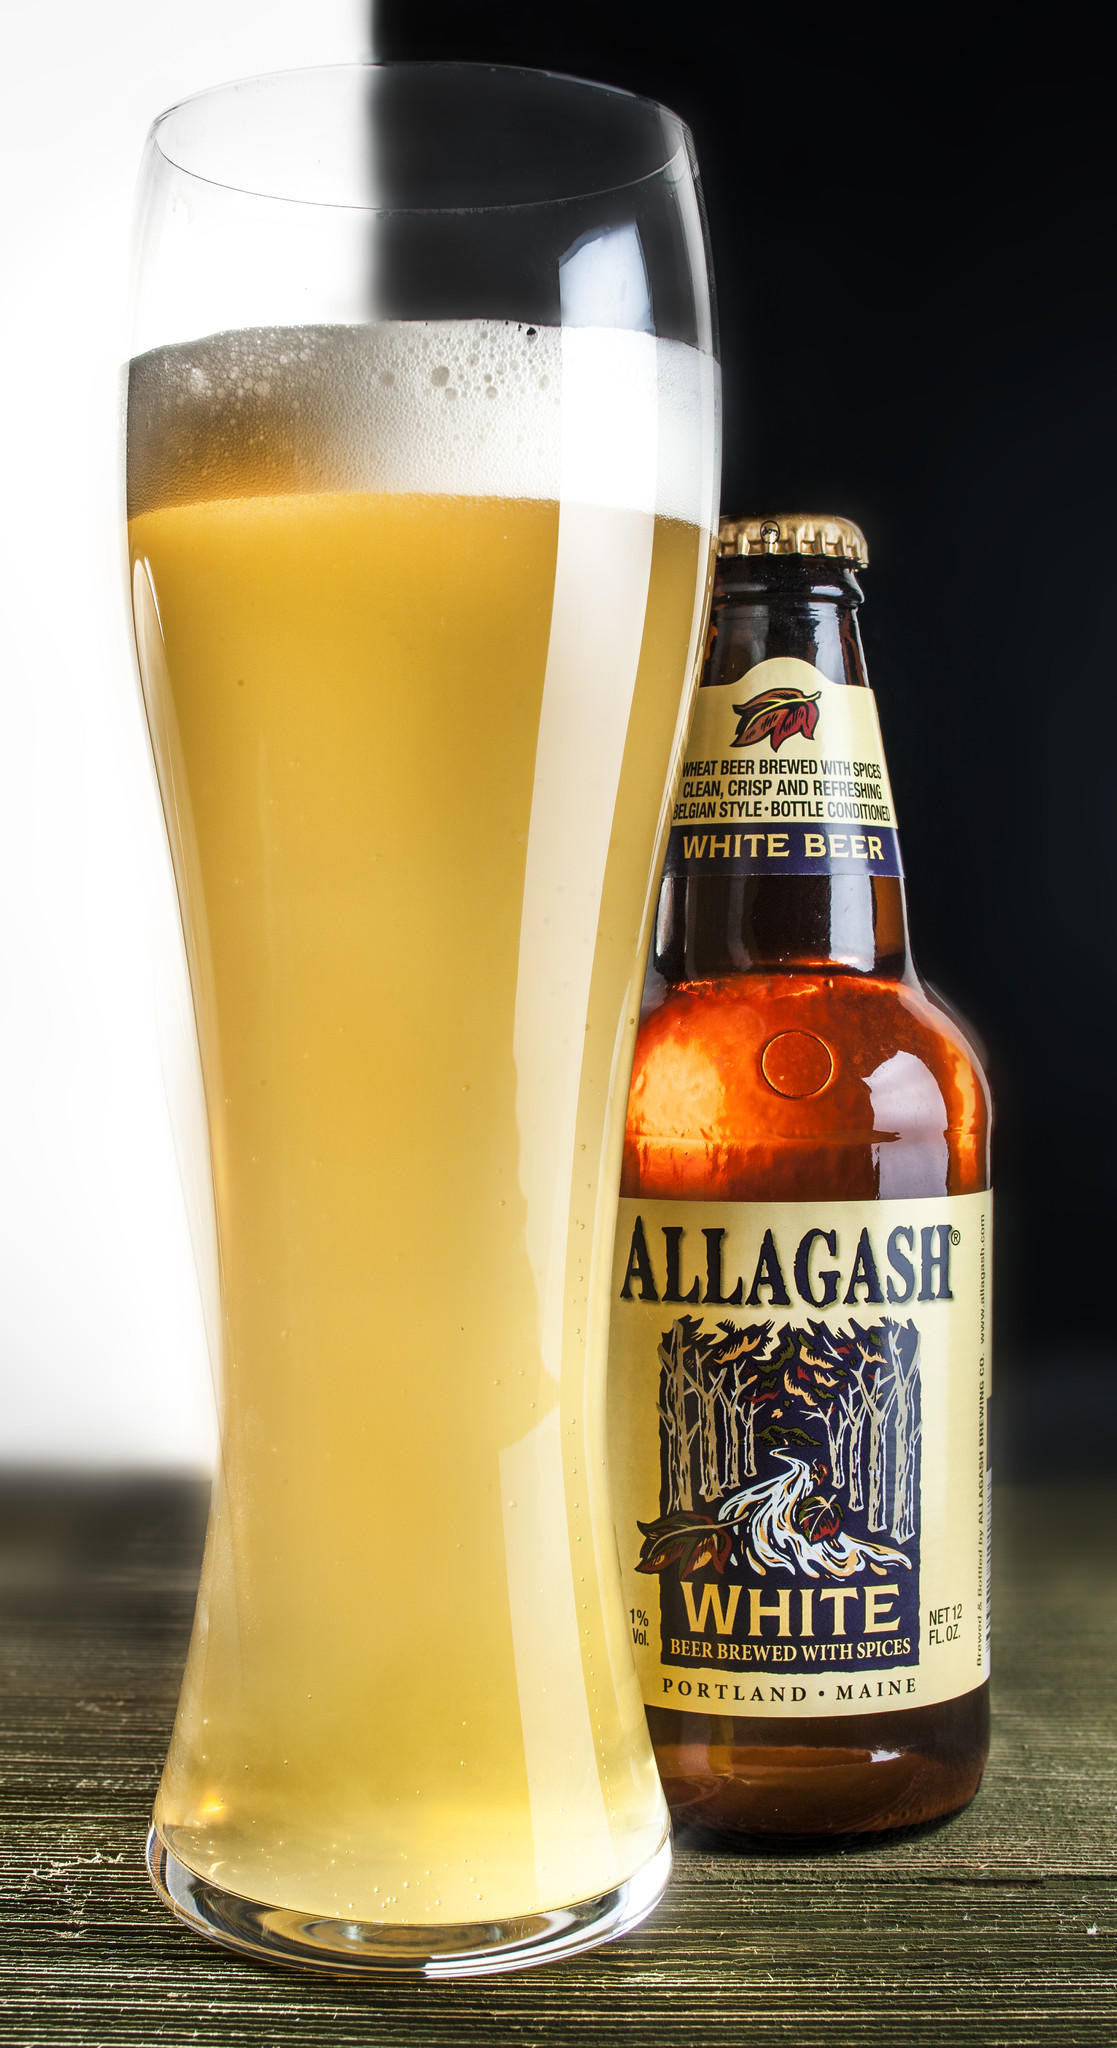 A bottle of Allagash White beer.